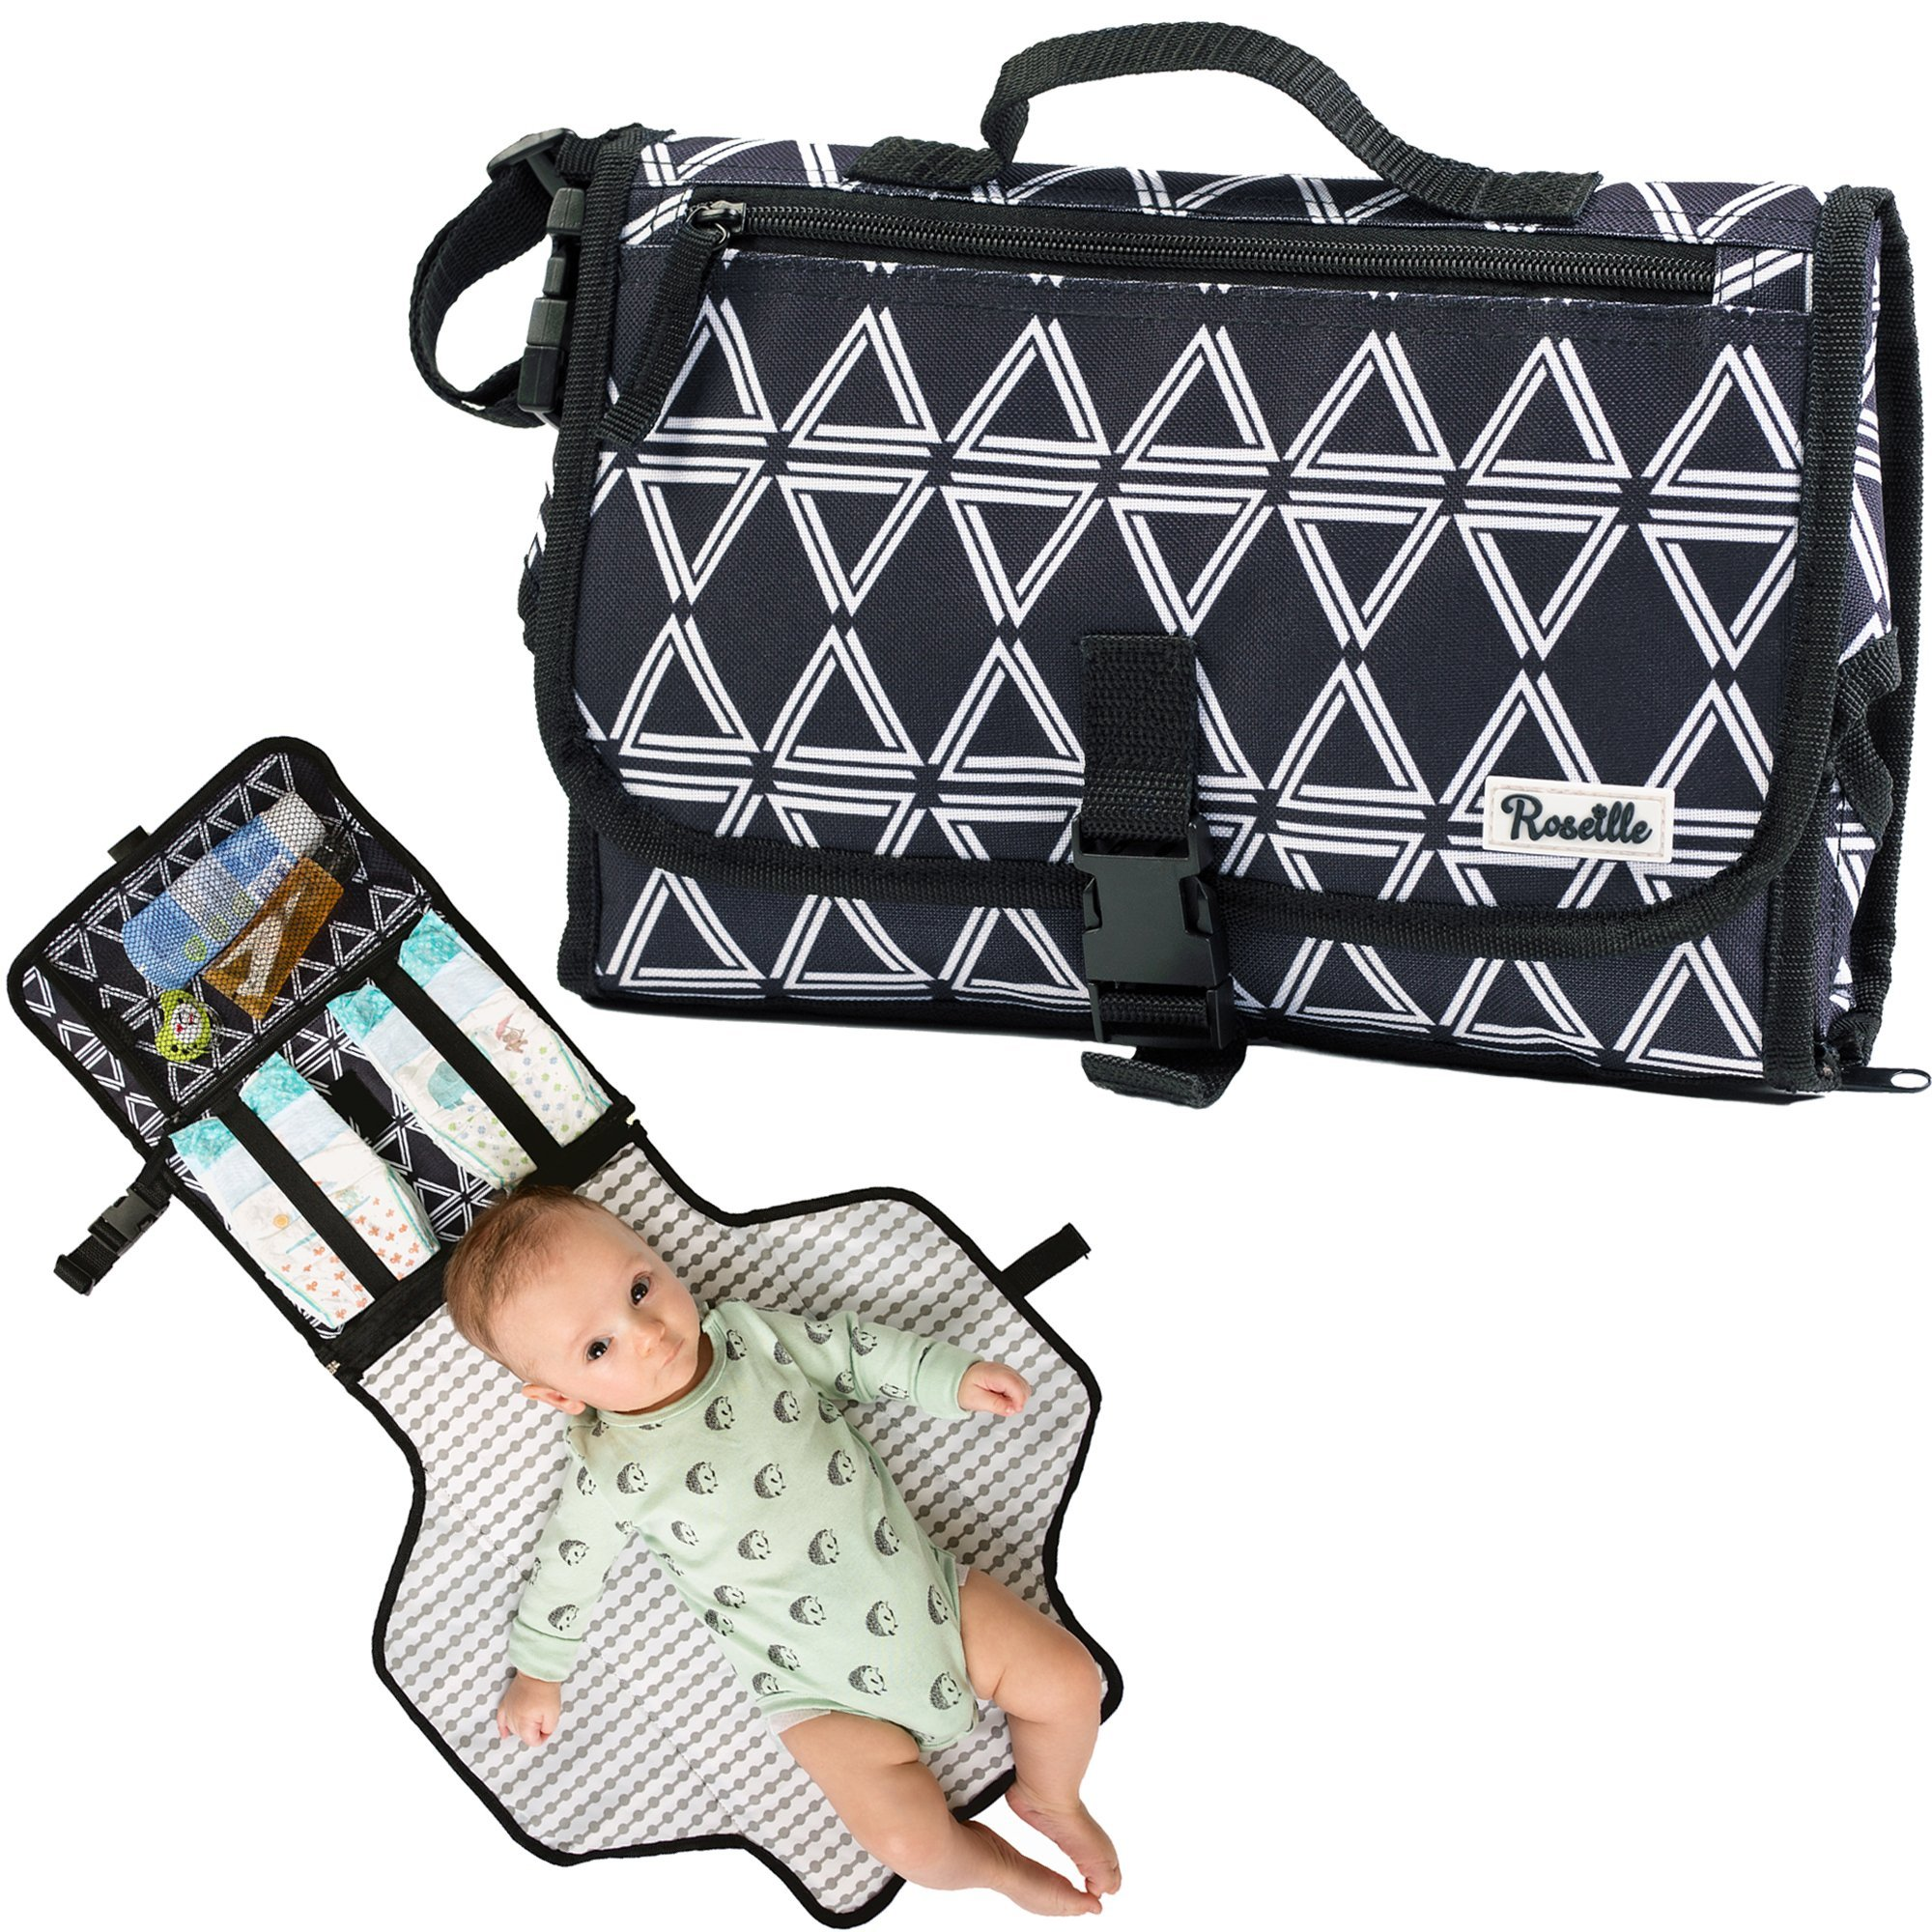 Portable Changing Pad By Roseille: Stylish Portable Changing Mat With Foam Padding & Foldable Design – Soft Wipeable Baby Changing Pad With Pockets &Carrying Handle